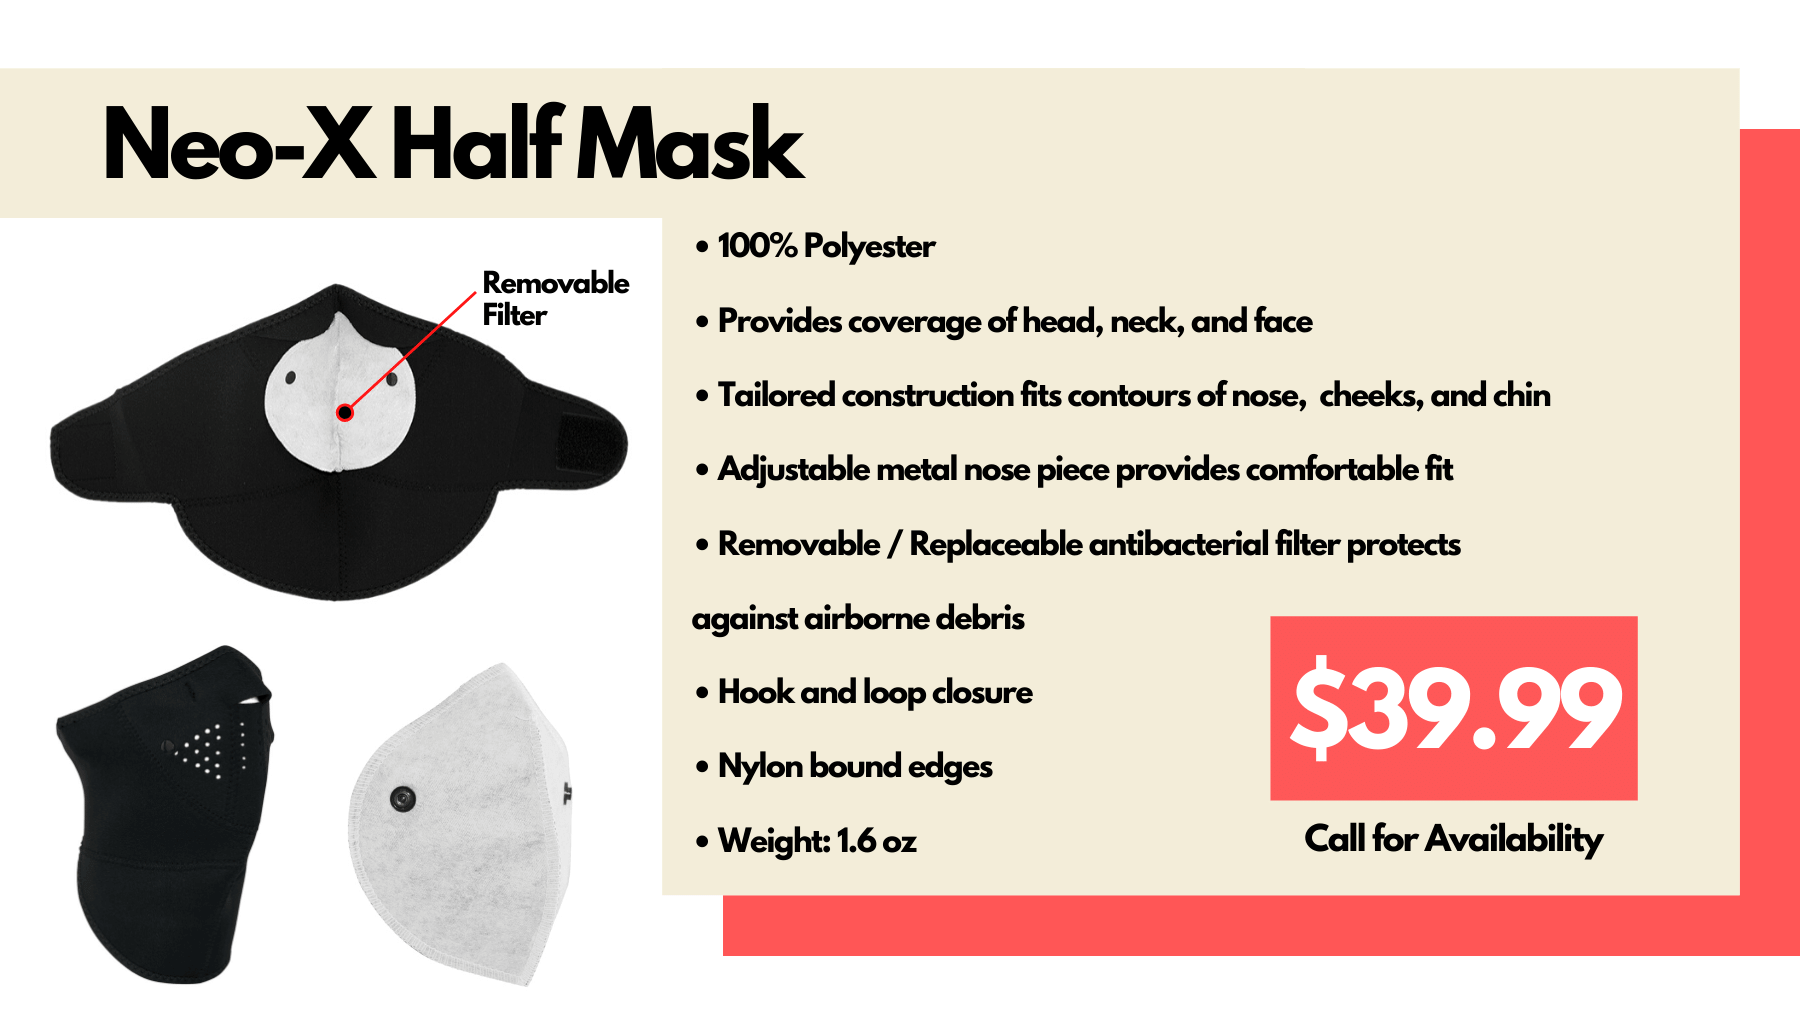 EMCO Neo-Half Mask with Removable Filter